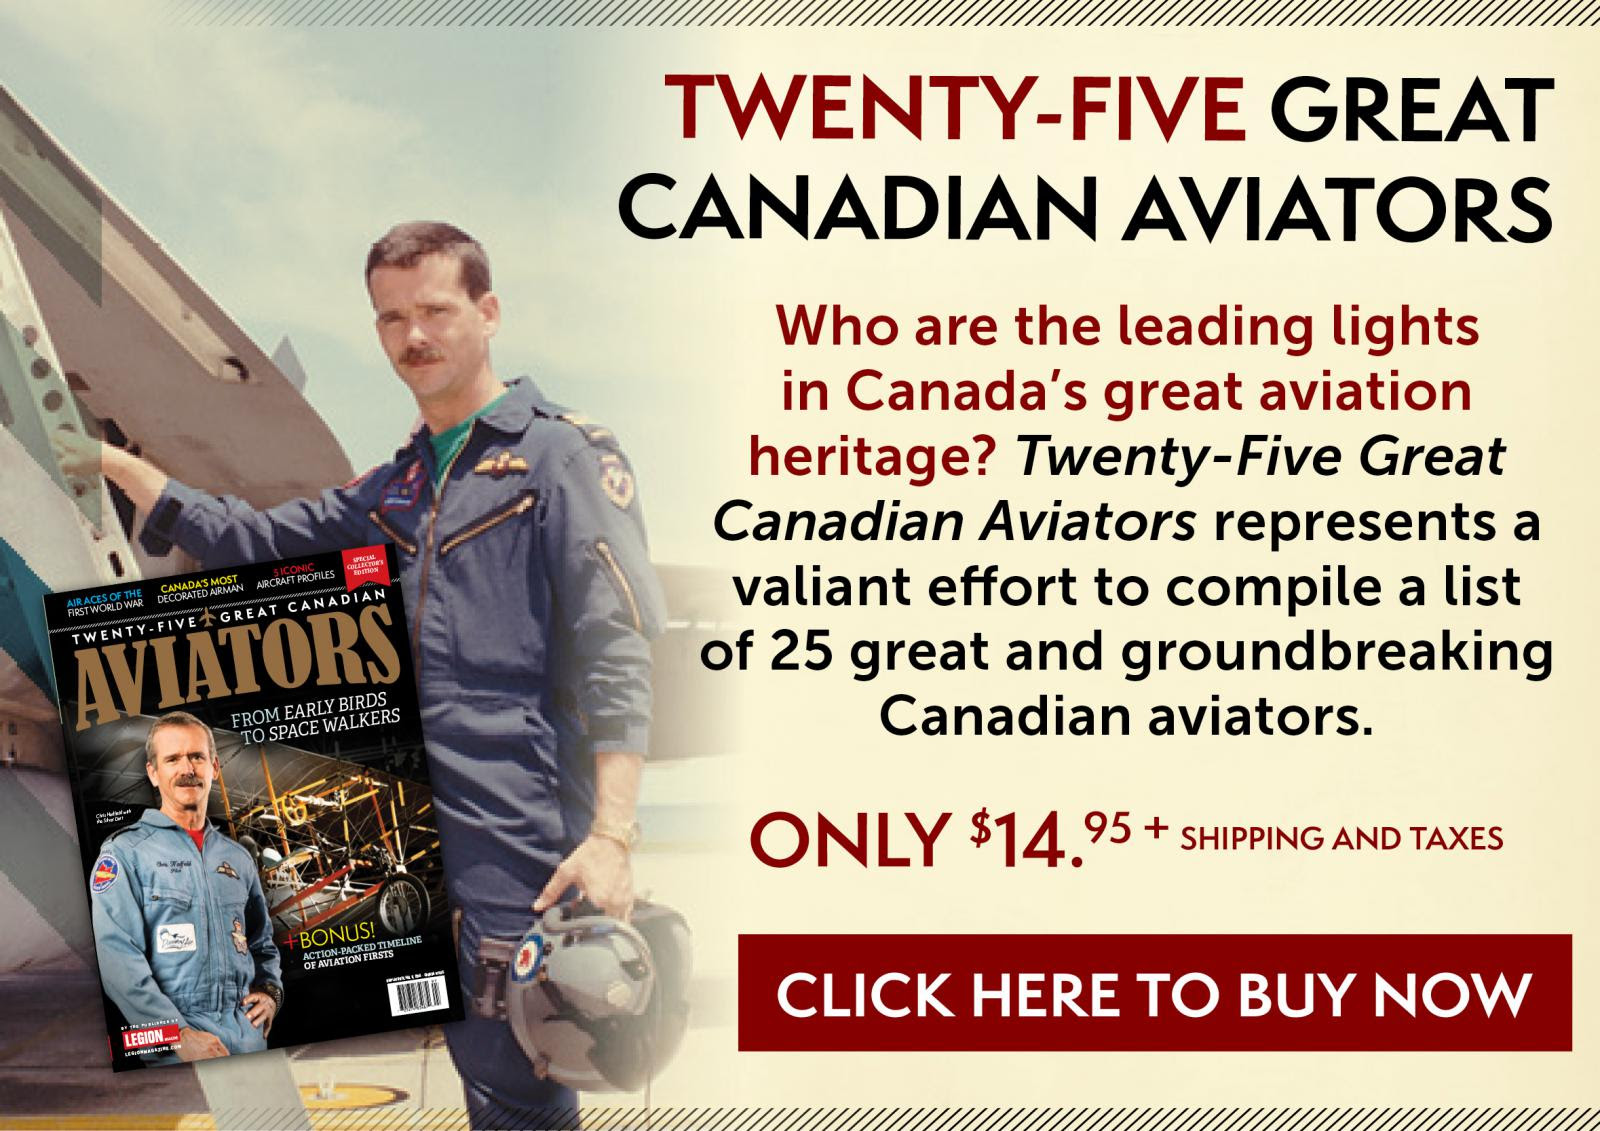 Twenty-Five Great Canadian Aviators